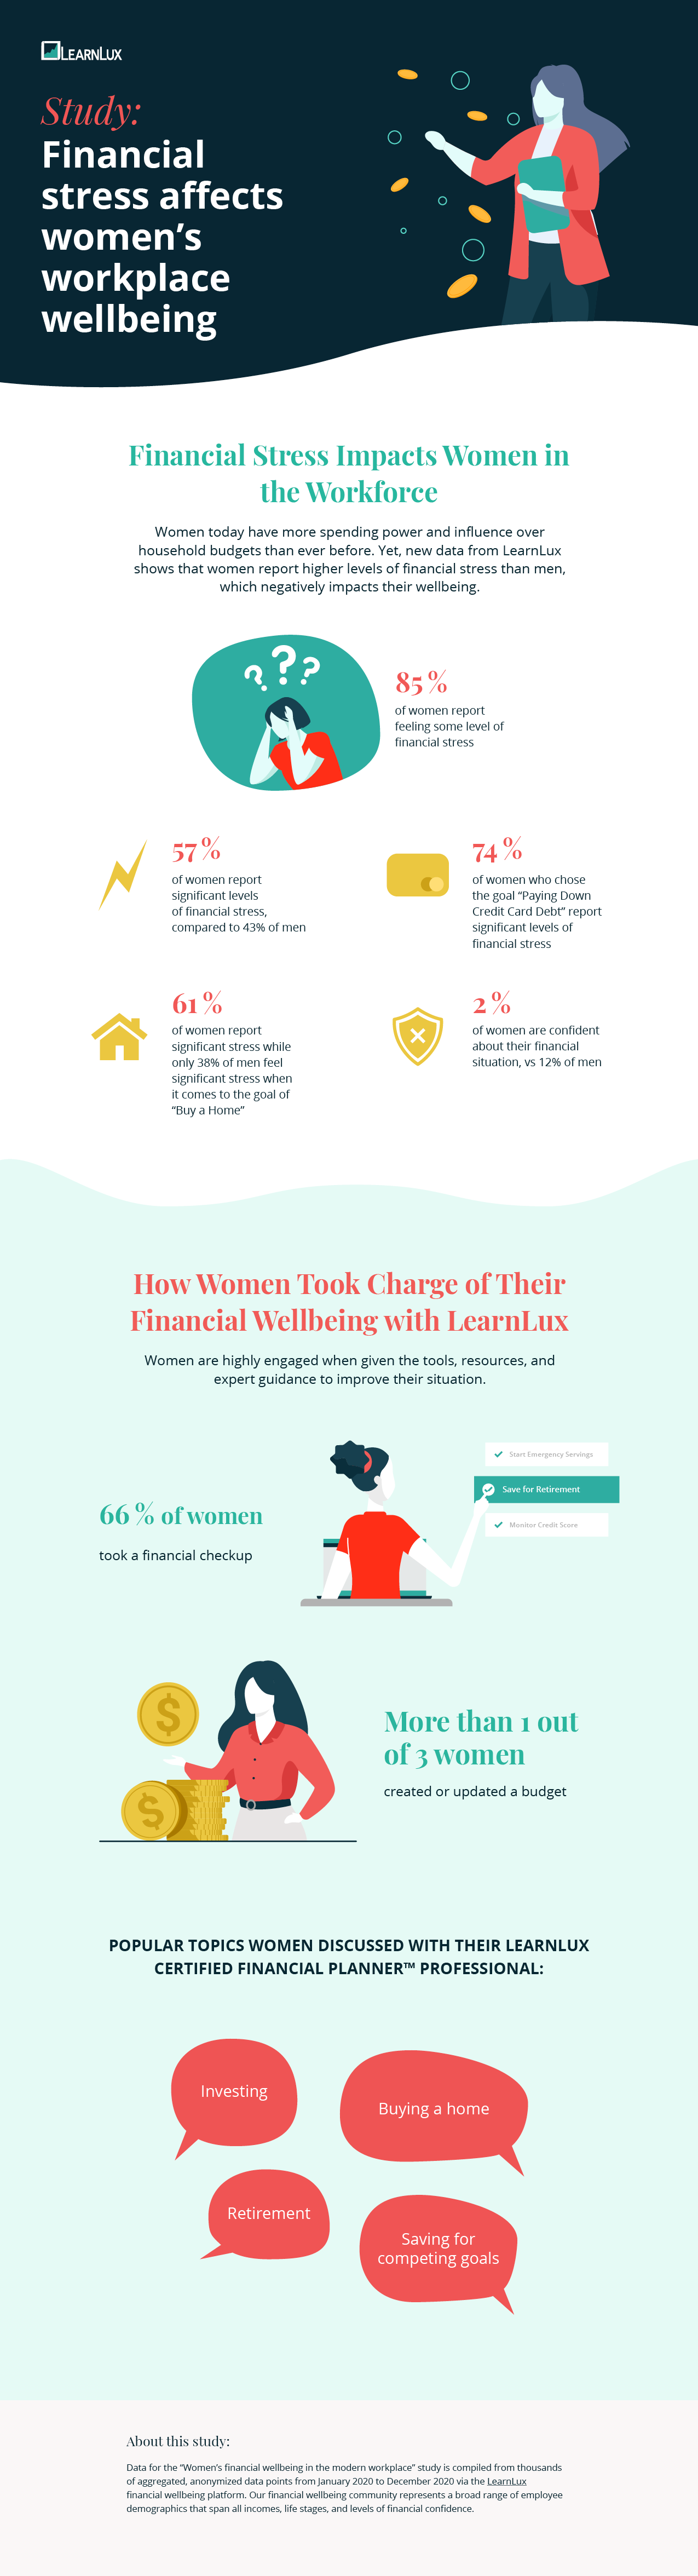 financial wellbeing for women in the workplace study infographic by LearnLux